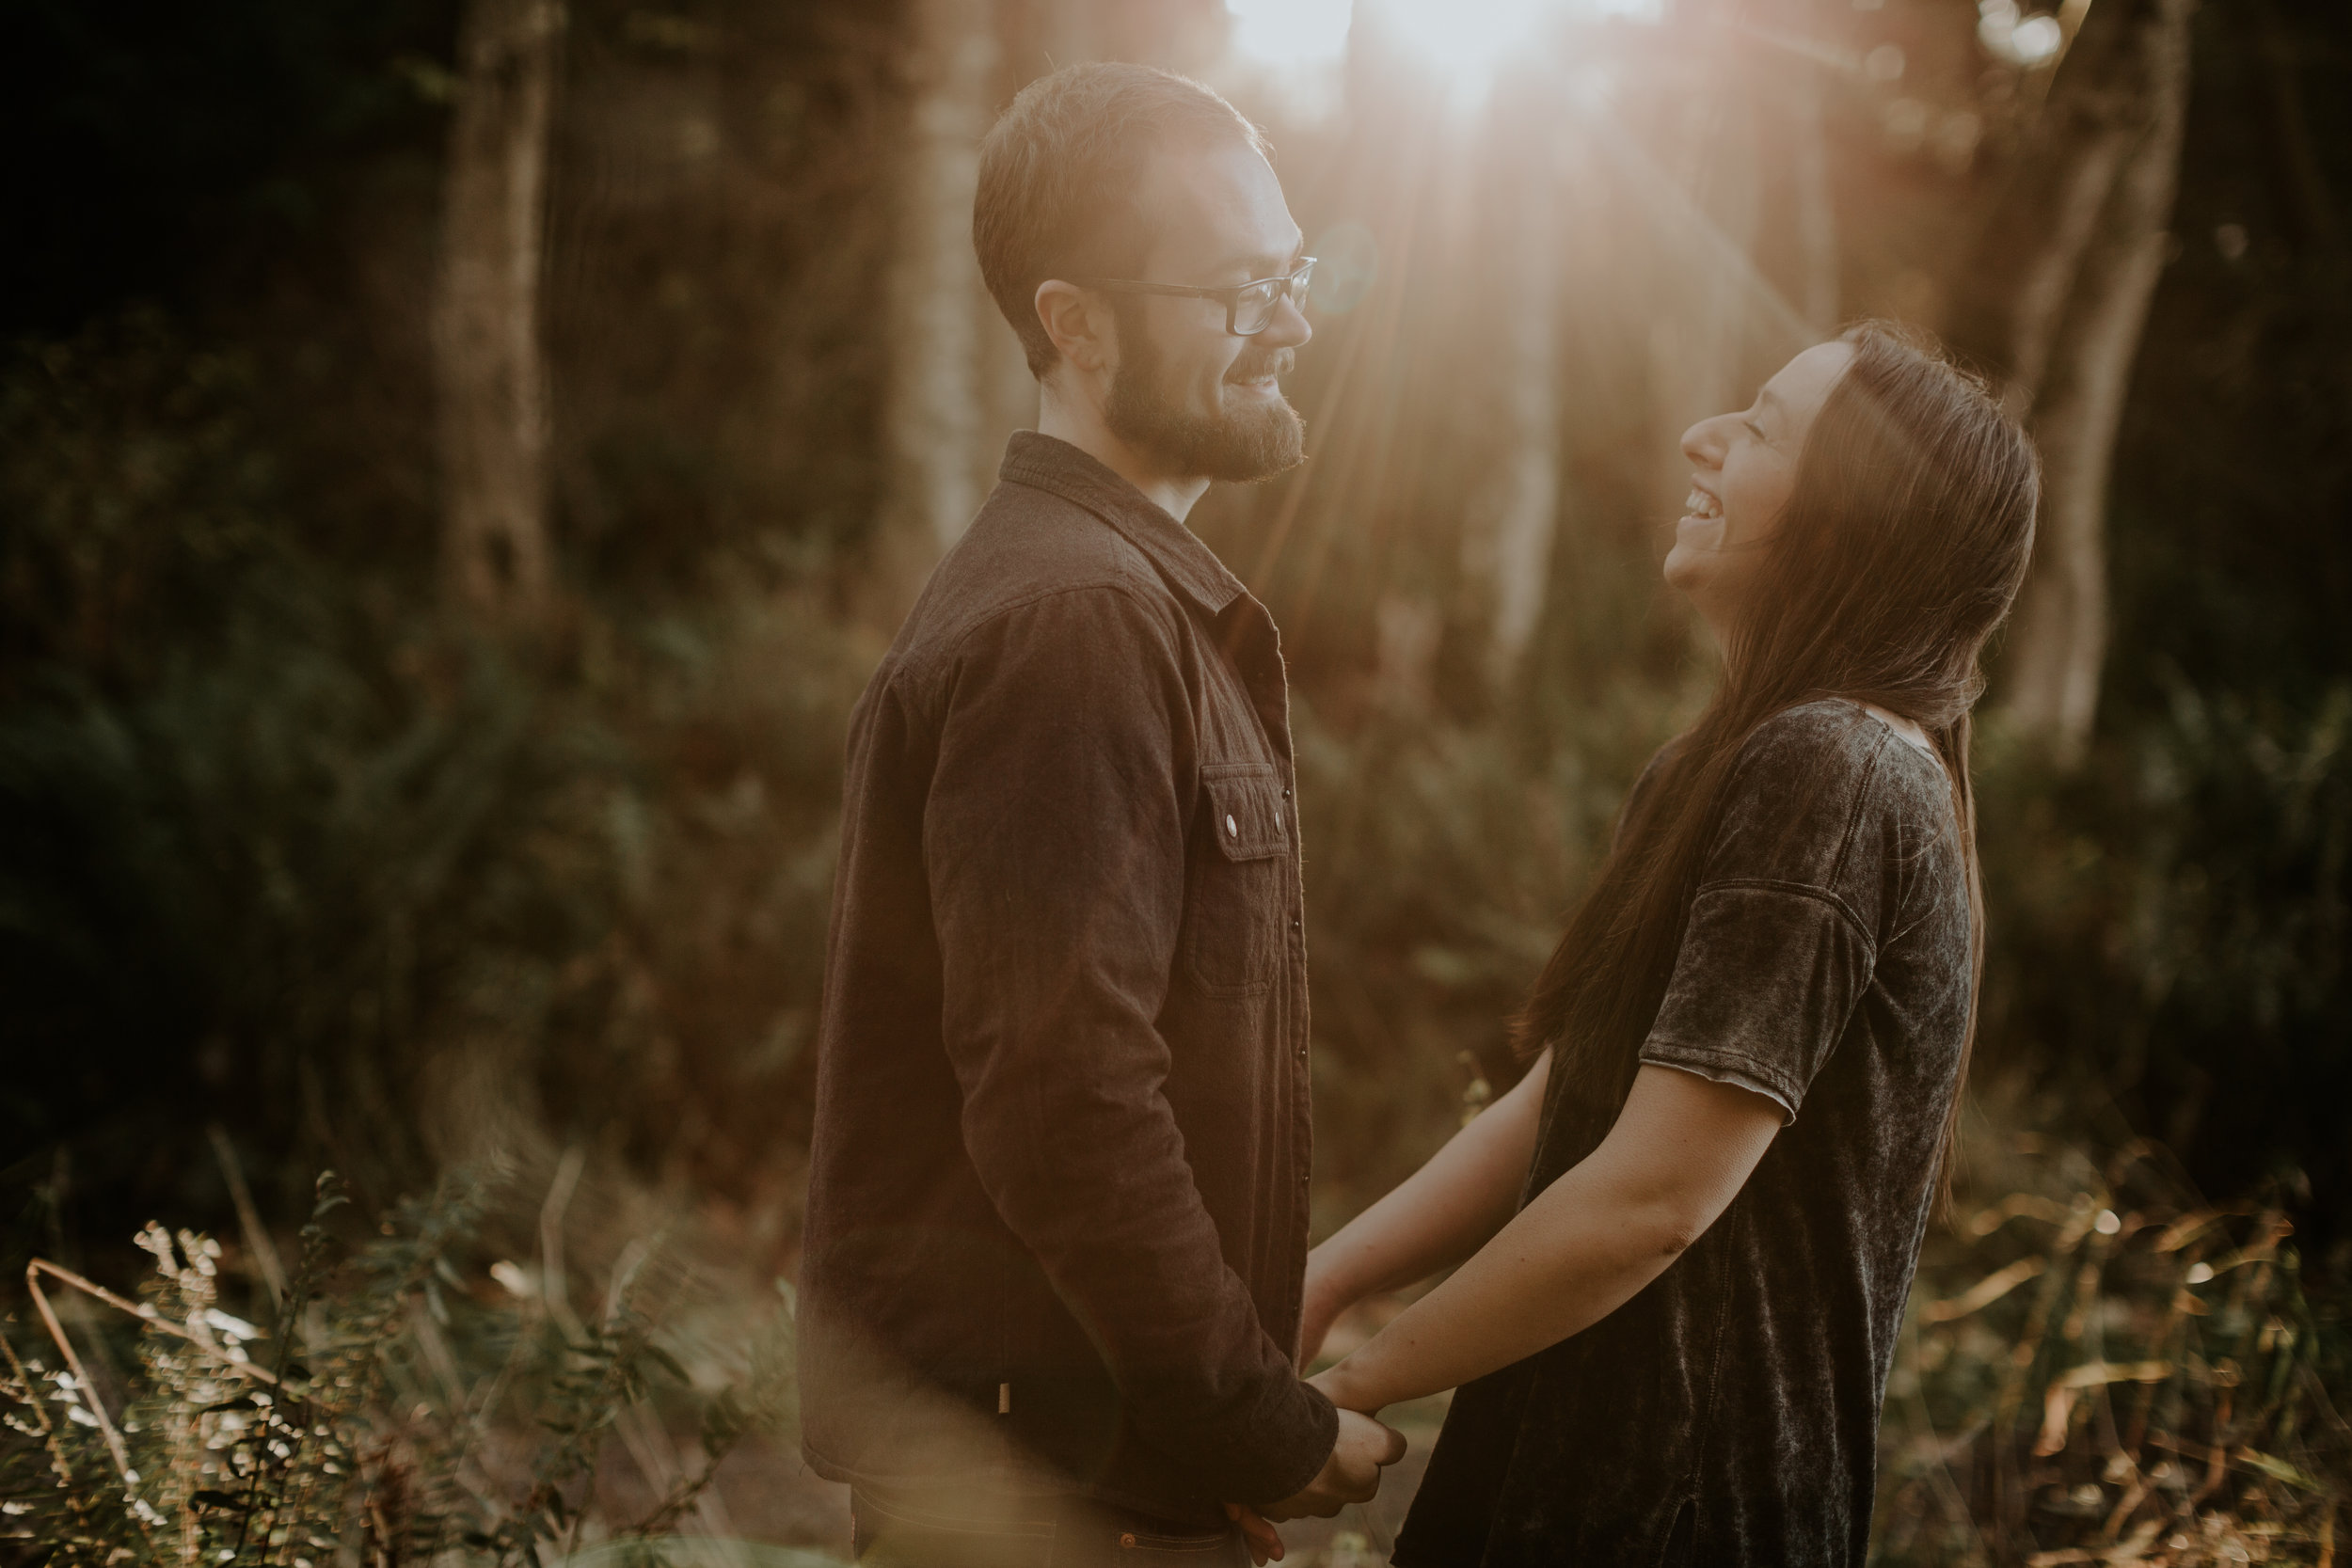 PNW-Olympic National Park-Salt Creek-engagement-Portrait-Port-Angeles-Washington-elopement-photographer-kayla-dawn-photography-kayladawnphoto-wedding-anniversary-photoshoot-olympic-peninsula-188.jpg